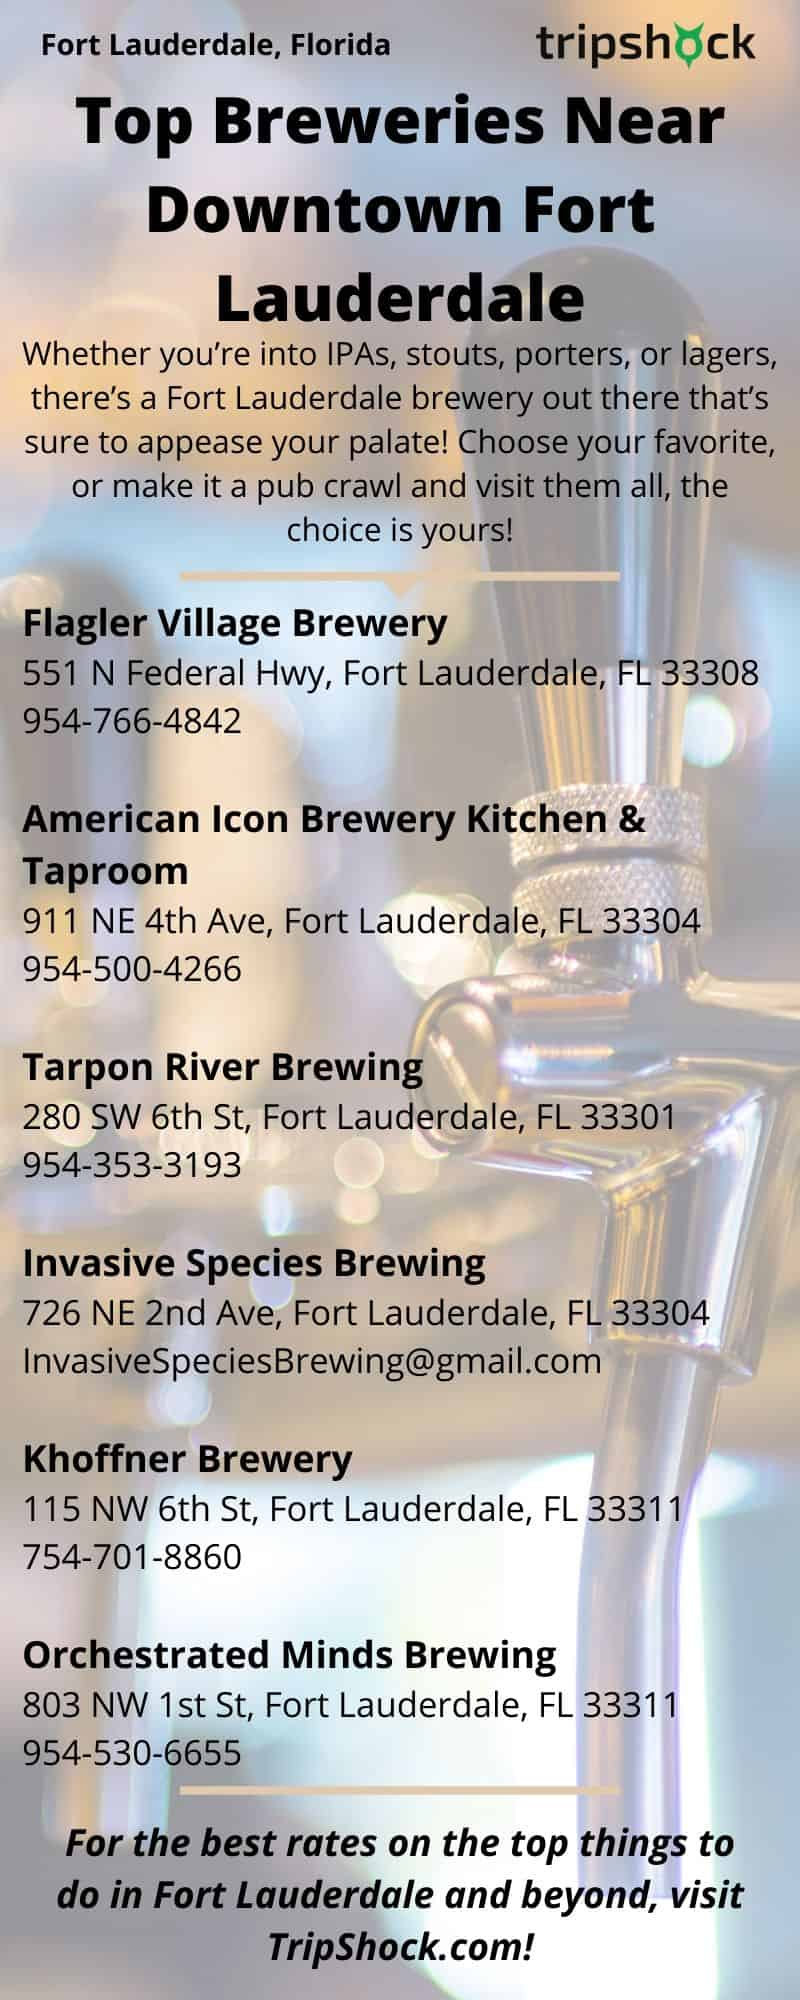 Top Breweries near Downtown Fort Lauderdale